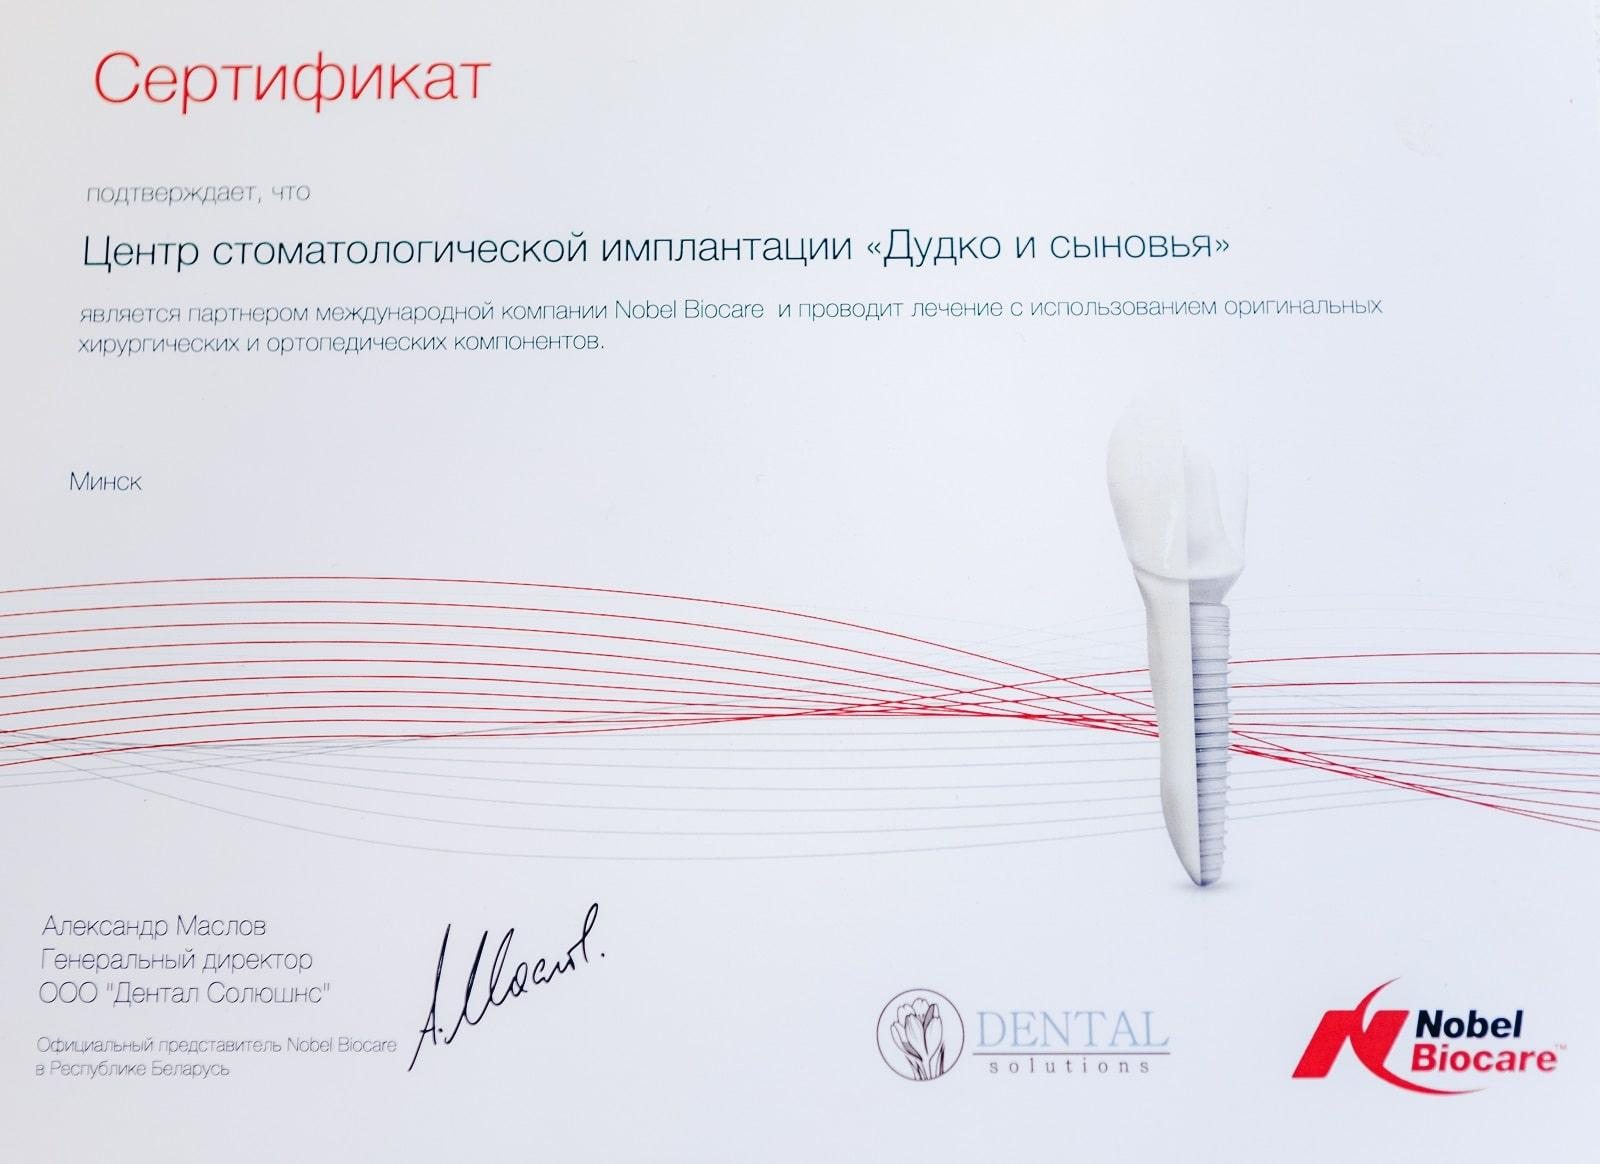 A certificate confirming that Dudko & Sons dentistry is a partner of the international company Nobel Biocare and performs operations using original surgical and orthopedic components. Signed by Alexander Maslov, General Director of Dental Solutions LLC.